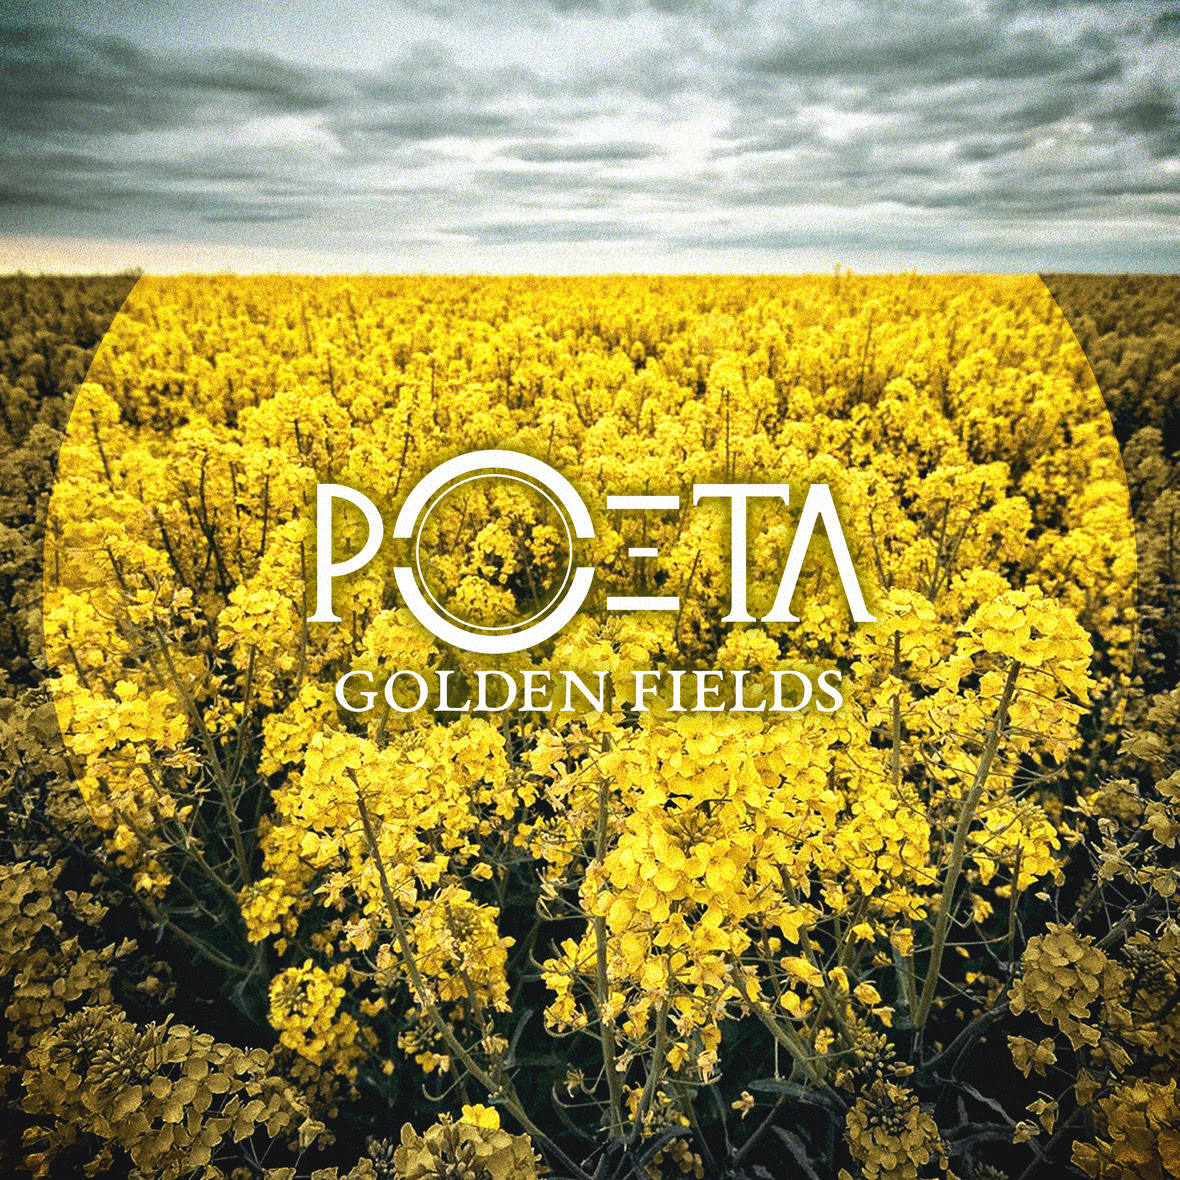 poeta golden fields